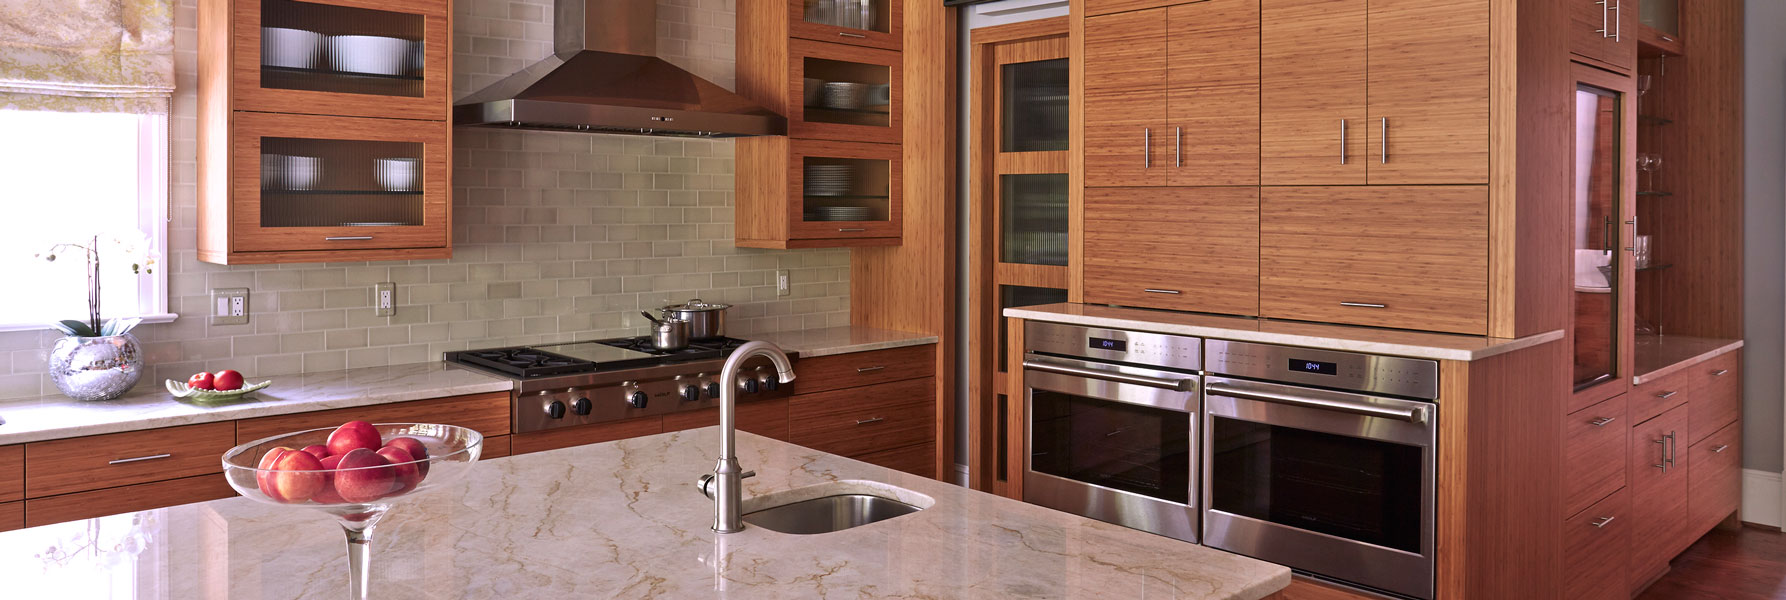 Marvelous Associate Kitchen And Bath Designer Akbd Nkba Home Interior And Landscaping Ologienasavecom